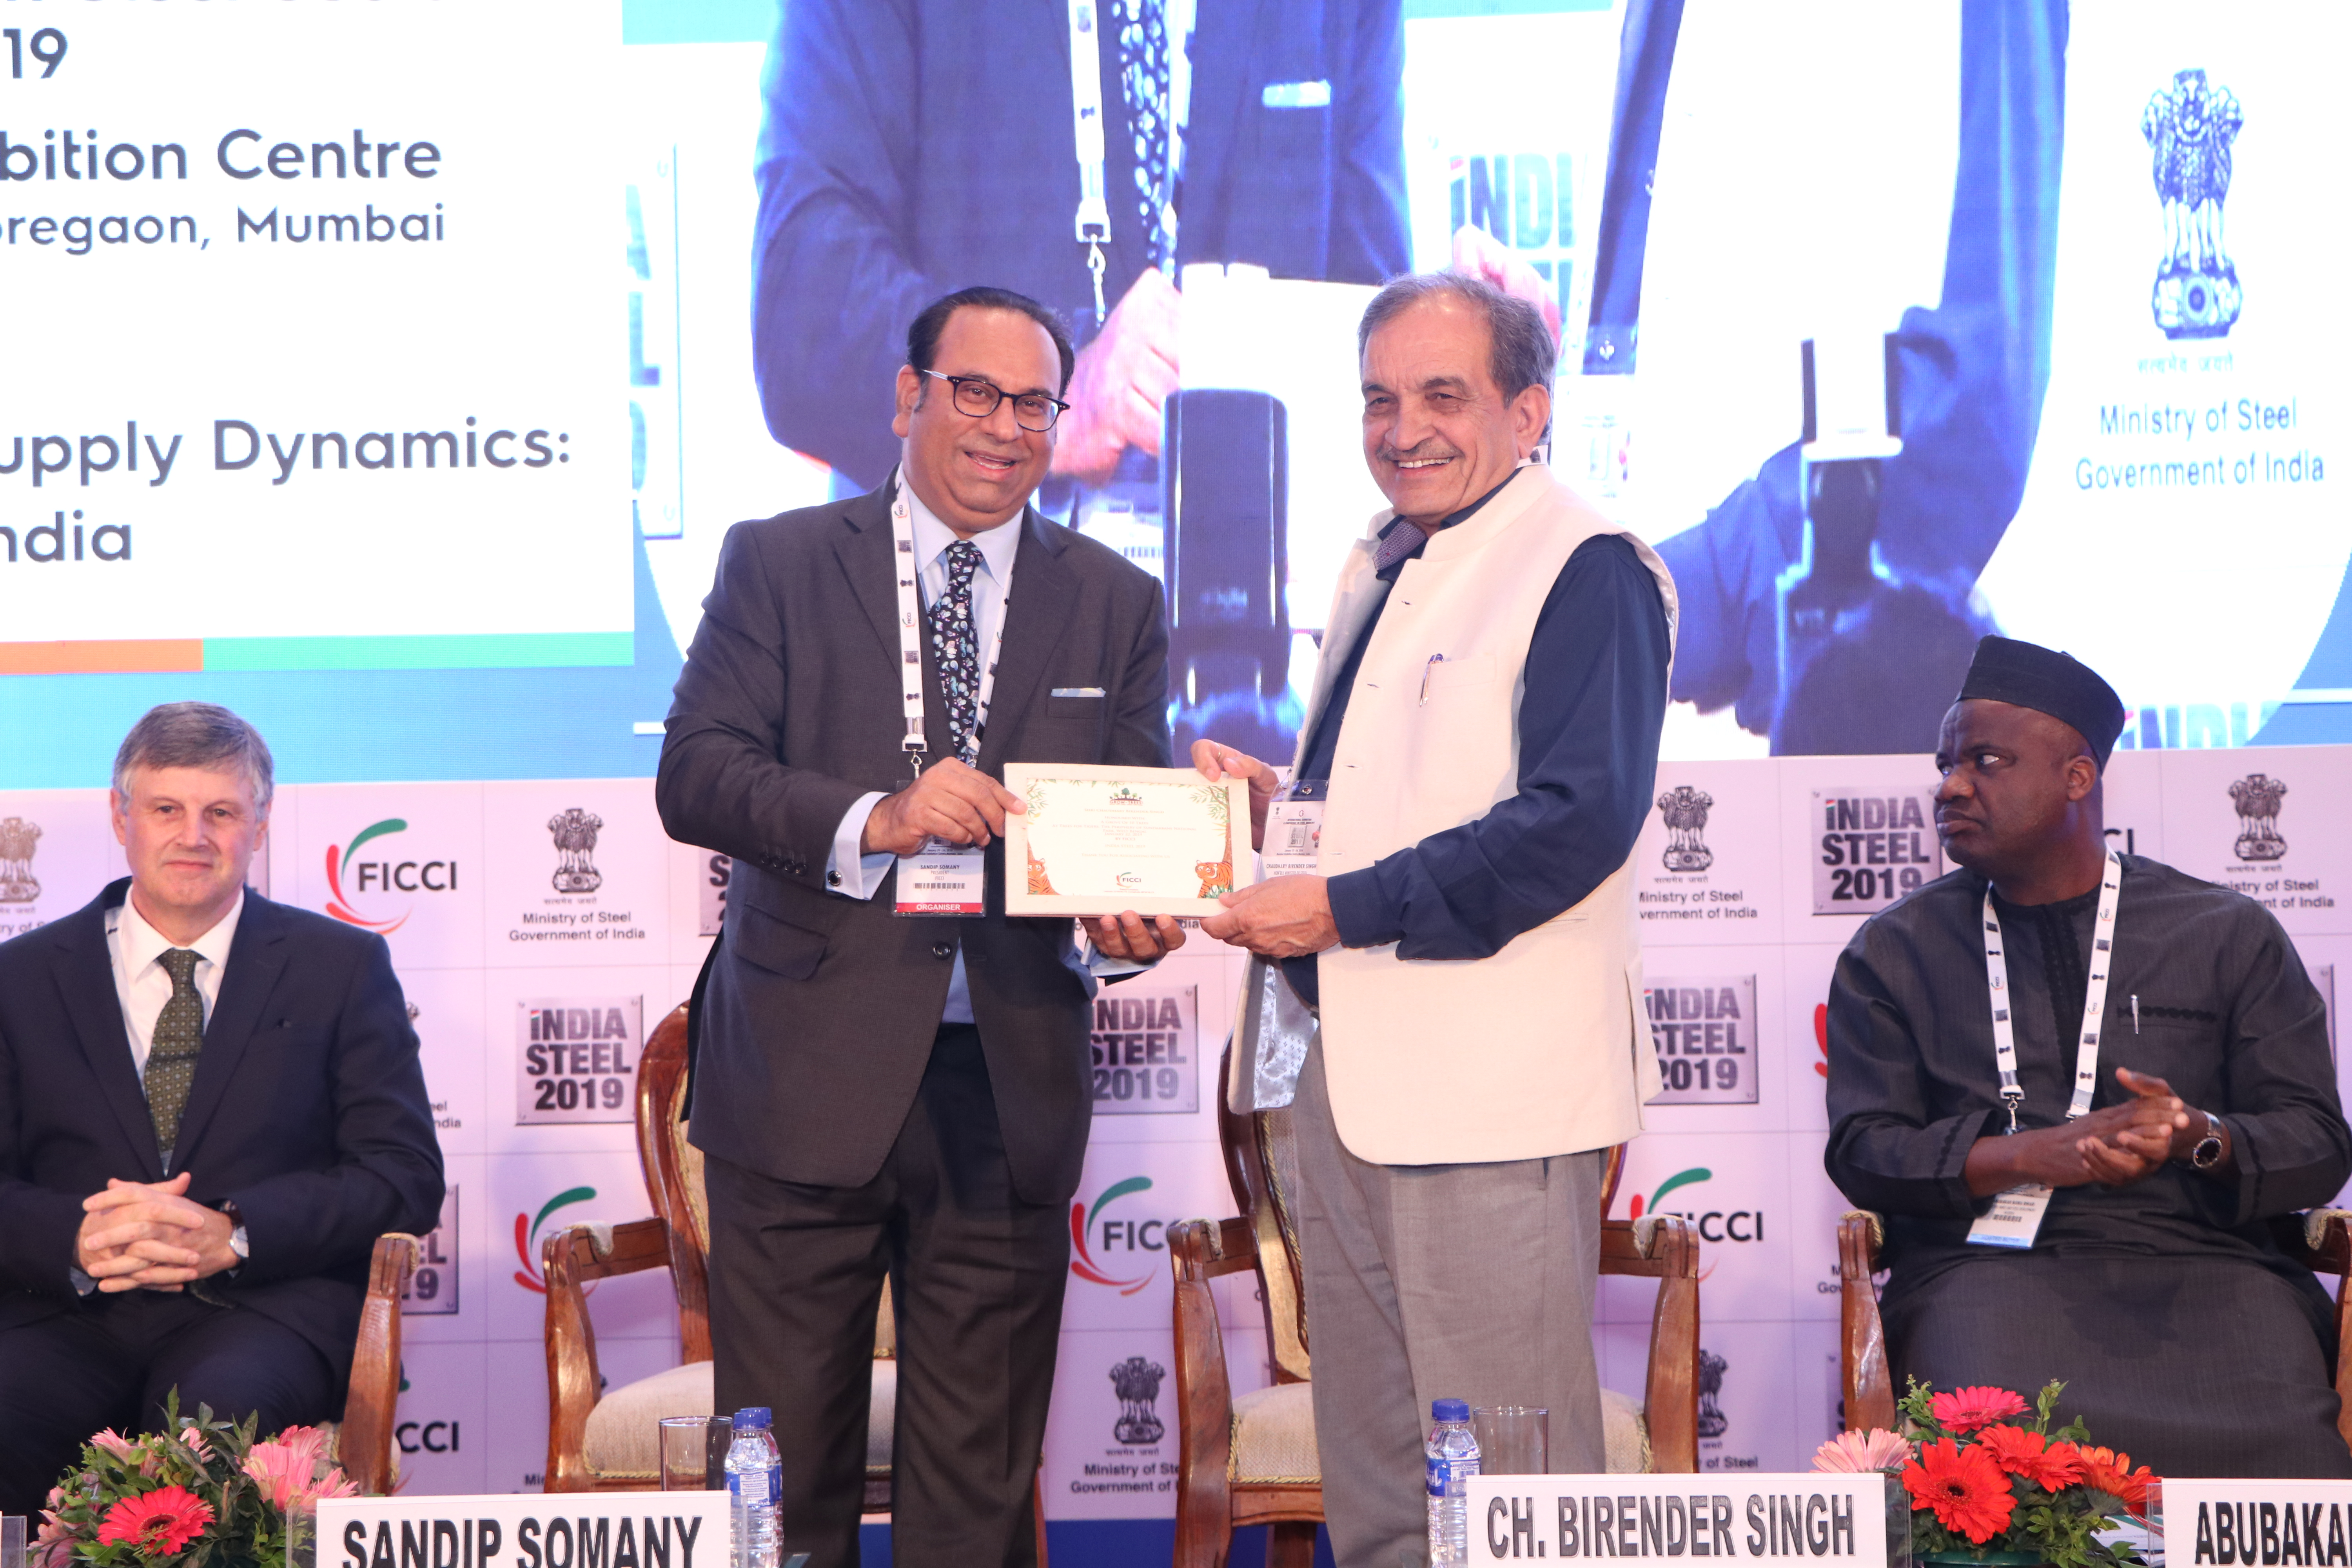 Mr.Sandip Somany, President, FICCI honors the Hon'ble Minister of Steel, Mr. Chaudhary Birender Singh at FICCI's India Steel 2019